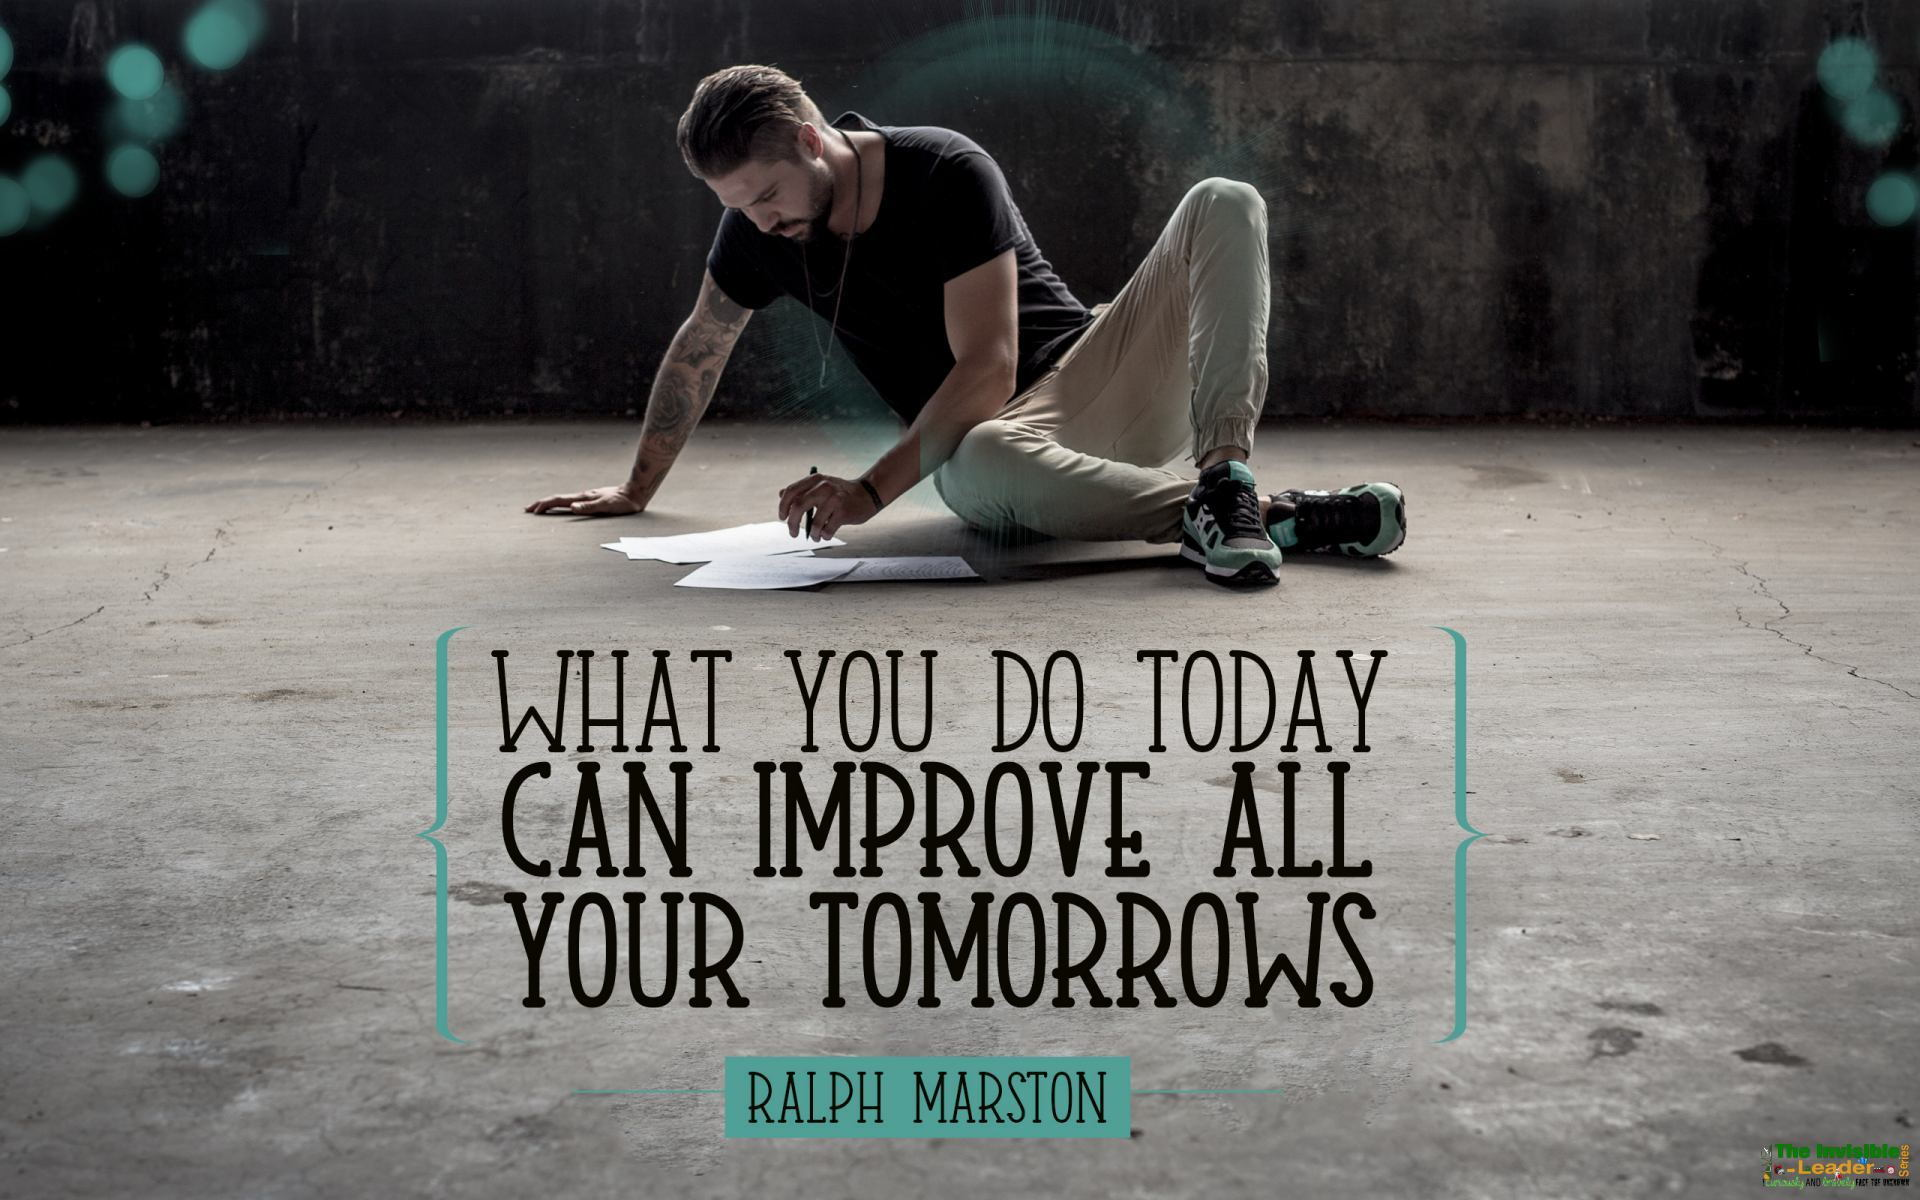 """WHAT YOU DO TODAY CAN IMPROVE ALL YOUR TOMORROWS"" RALPH MARSTON! [1920×1200]"